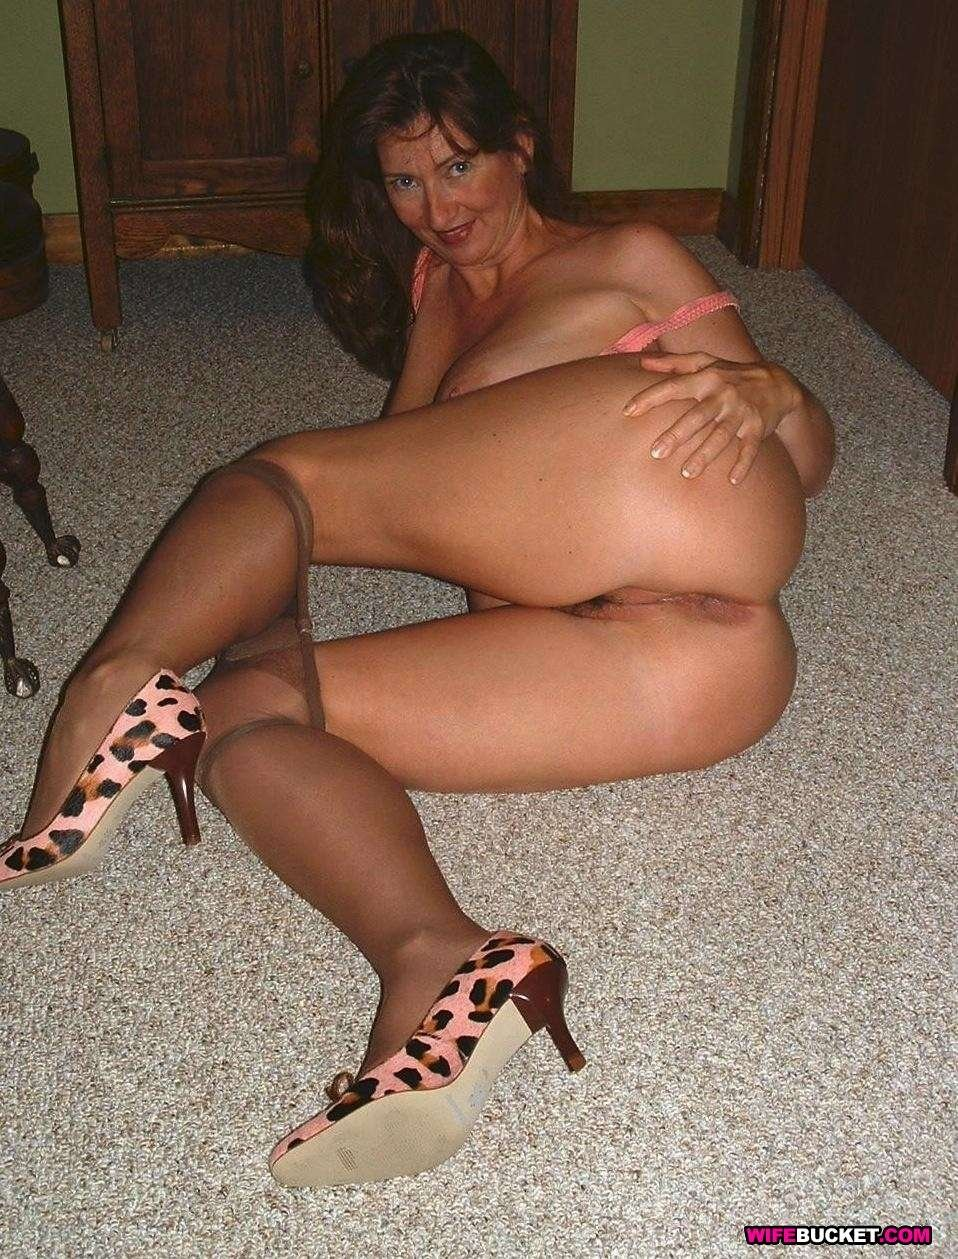 Adult sites college Virgin amateur pussy wife sharing x videos